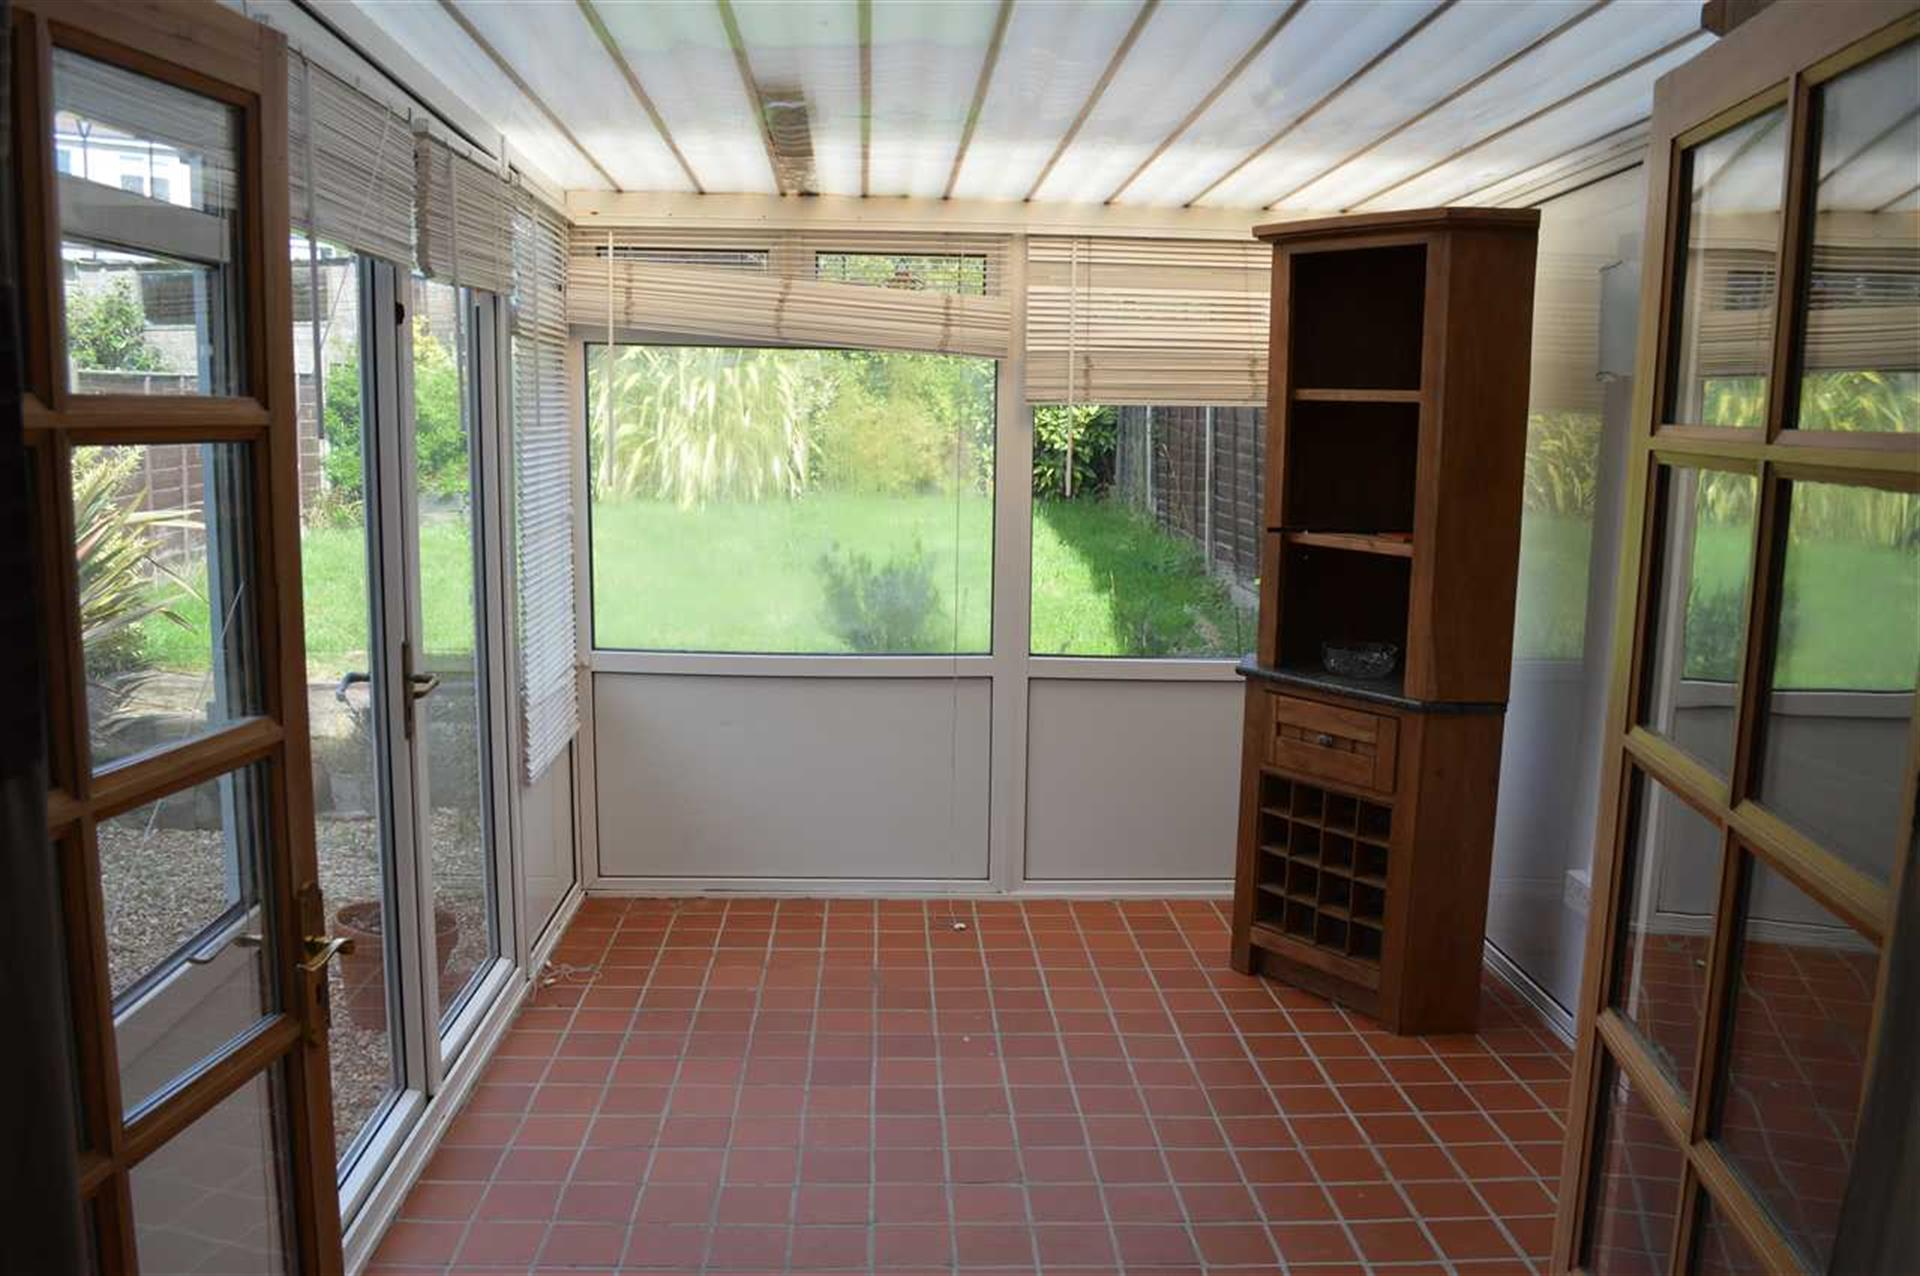 3 Bedroom Semi-detached House To Rent - Conservatory